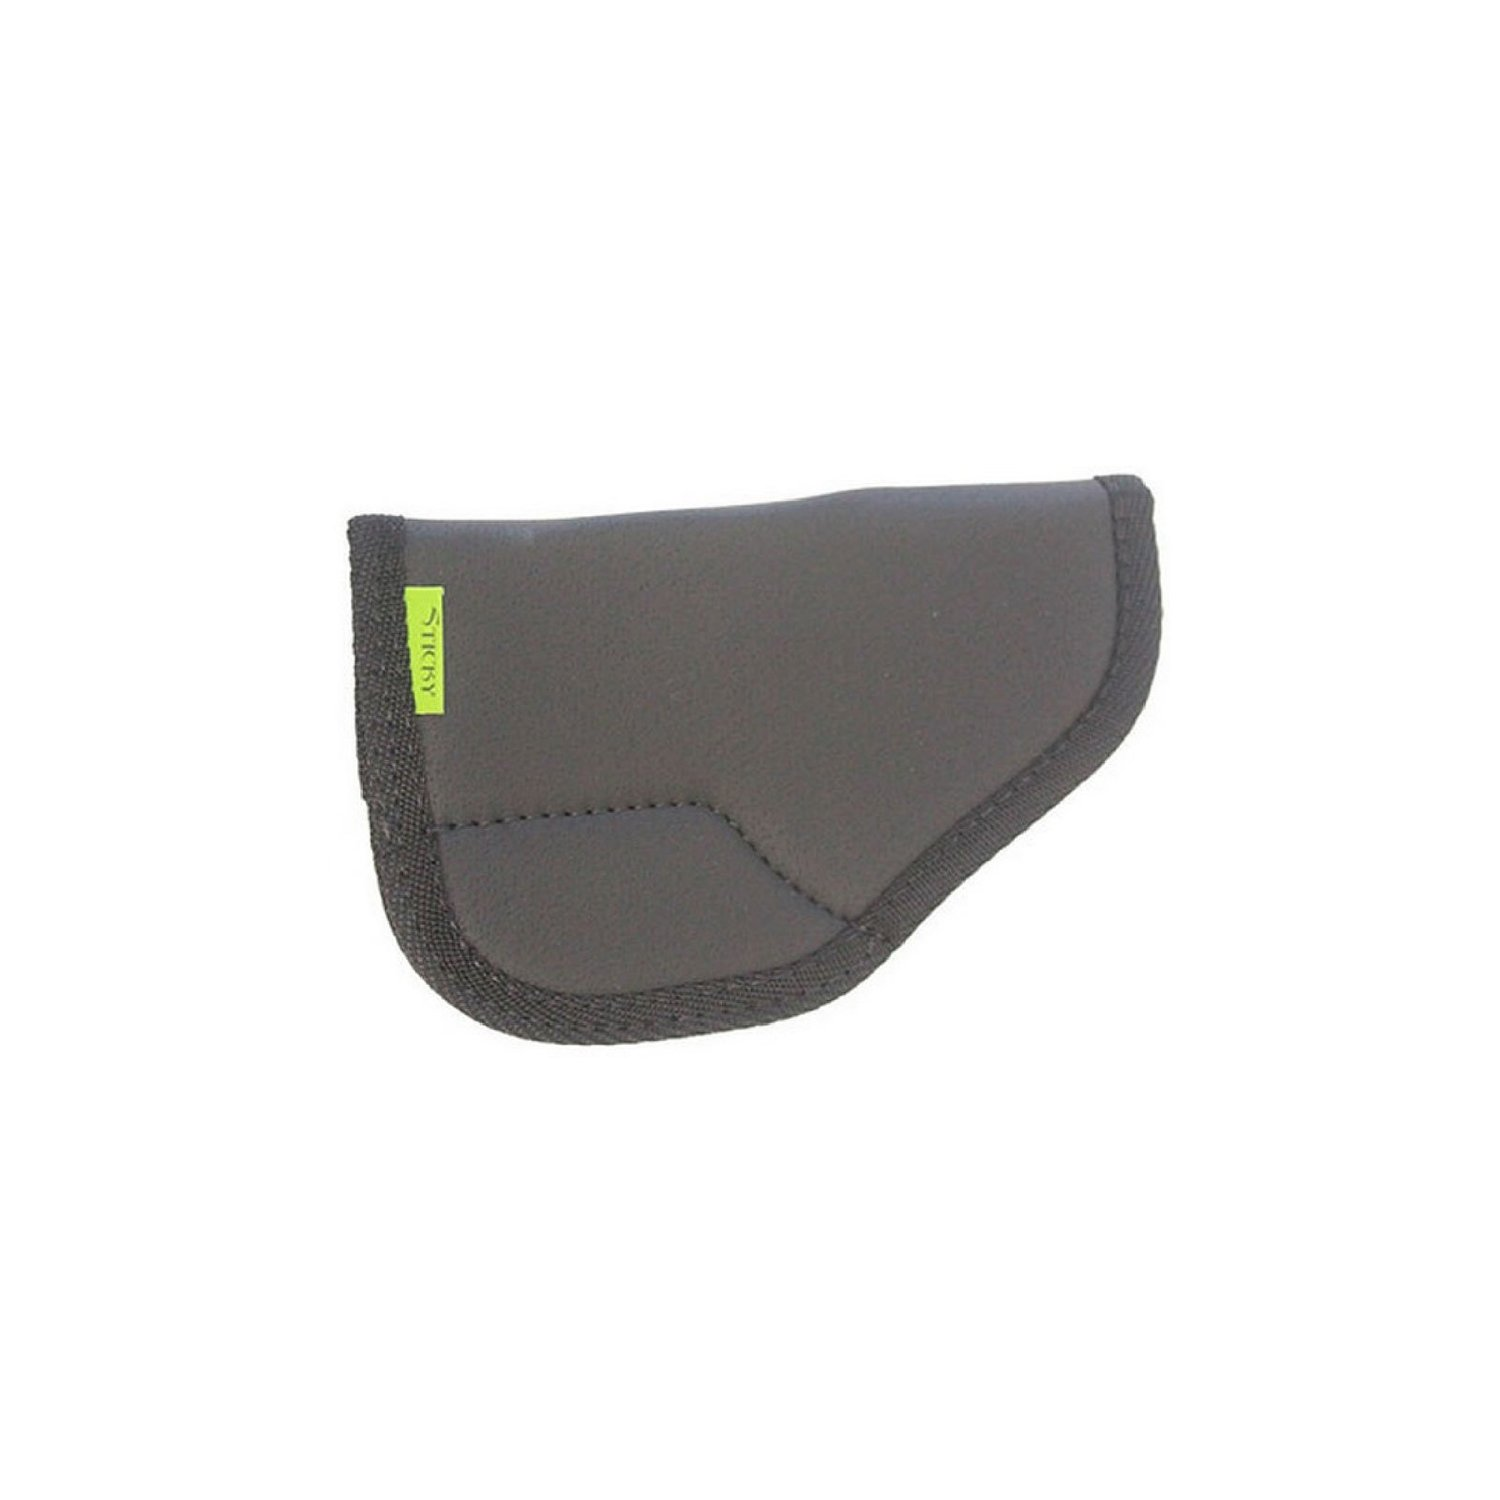 STICKY HOLSTER Small - 1911 and clones from 3 to 4 barrel. IWB or Pocket (LG-1 SHORT)